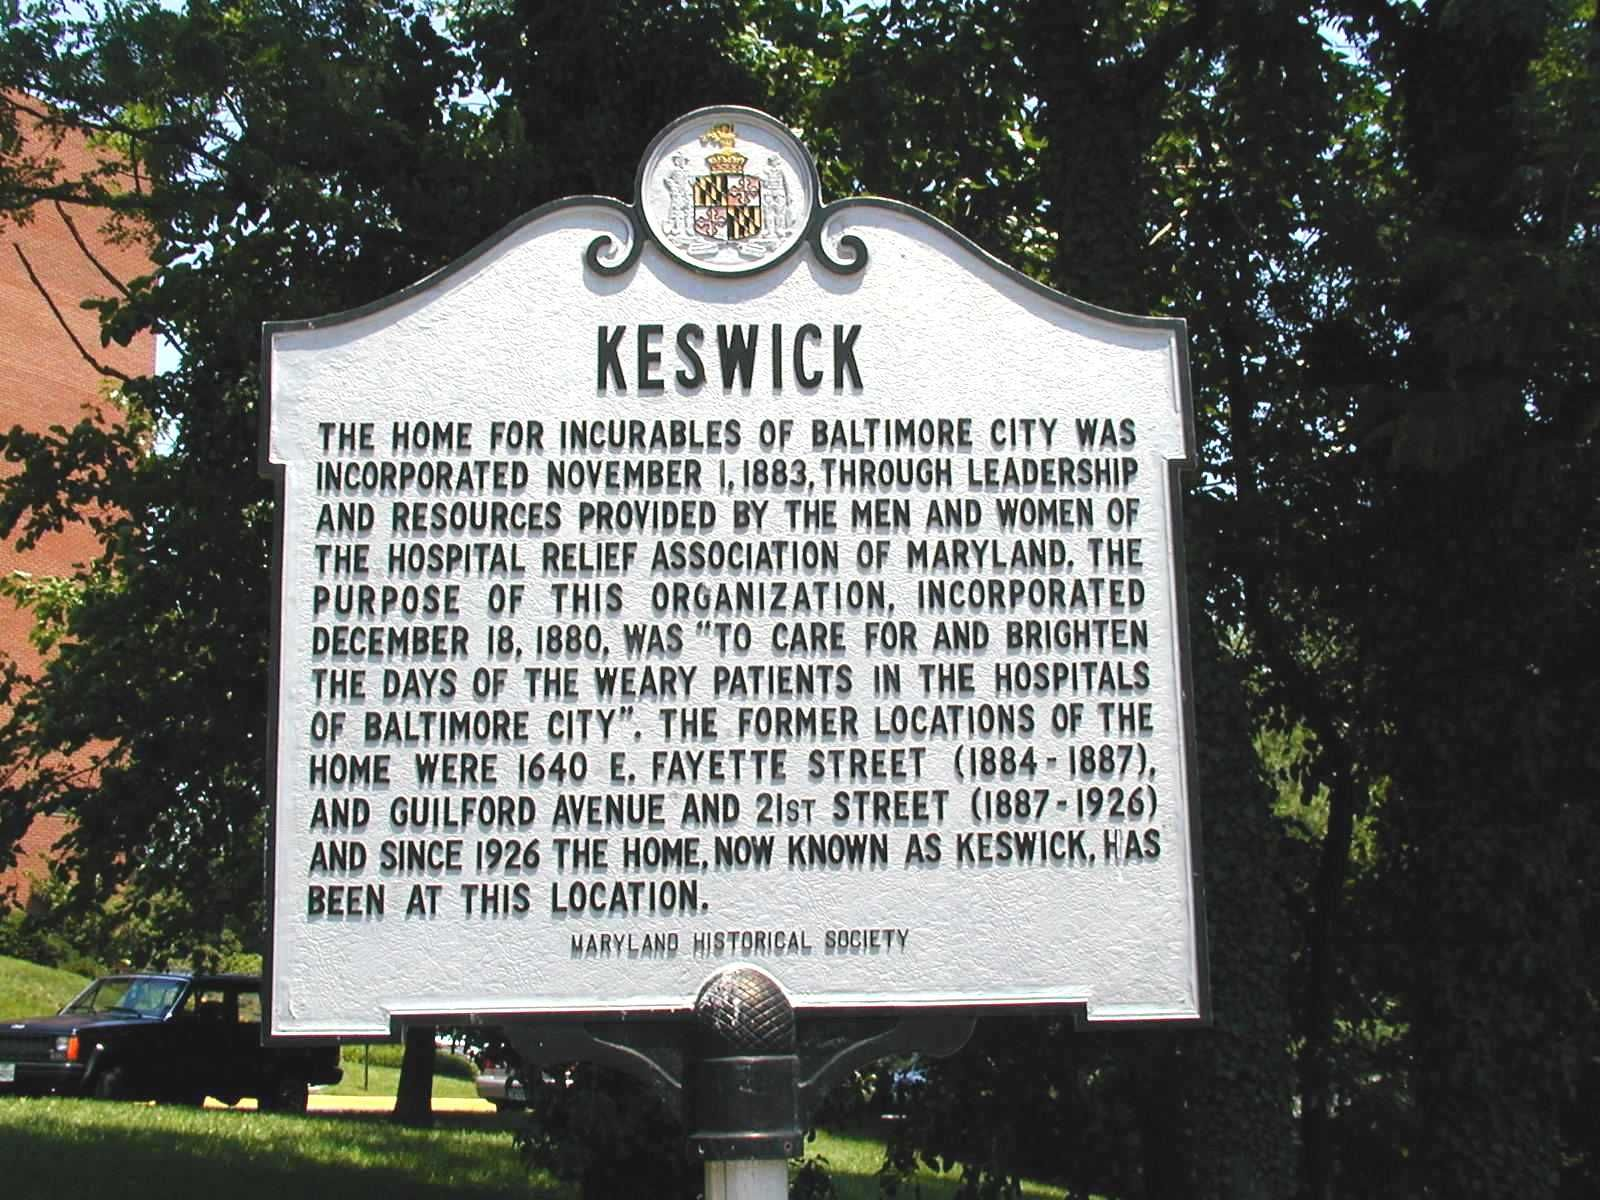 Keswick, home of the incurables, Baltimore City